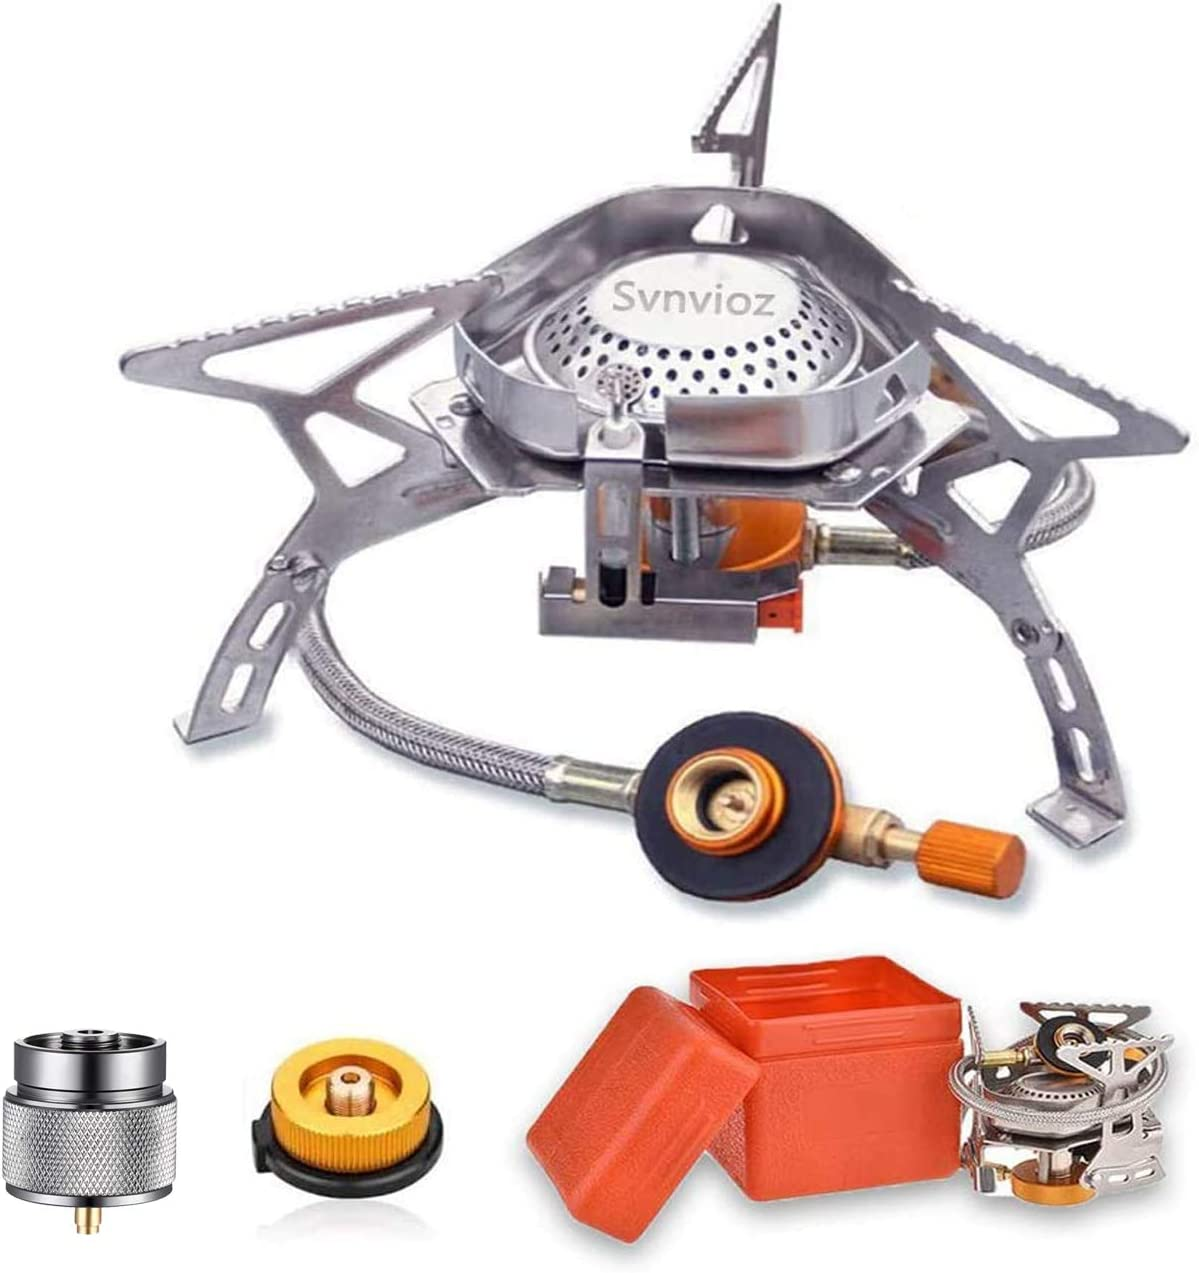 Upgrade Portable Camping Stove Burner, Strong Firepower with Piezo Ignition, 2 Types Propane Butane Stove Adapter, Folding Lightweight Windproof Backpacking Stove for Outdoor Hiking Cooking